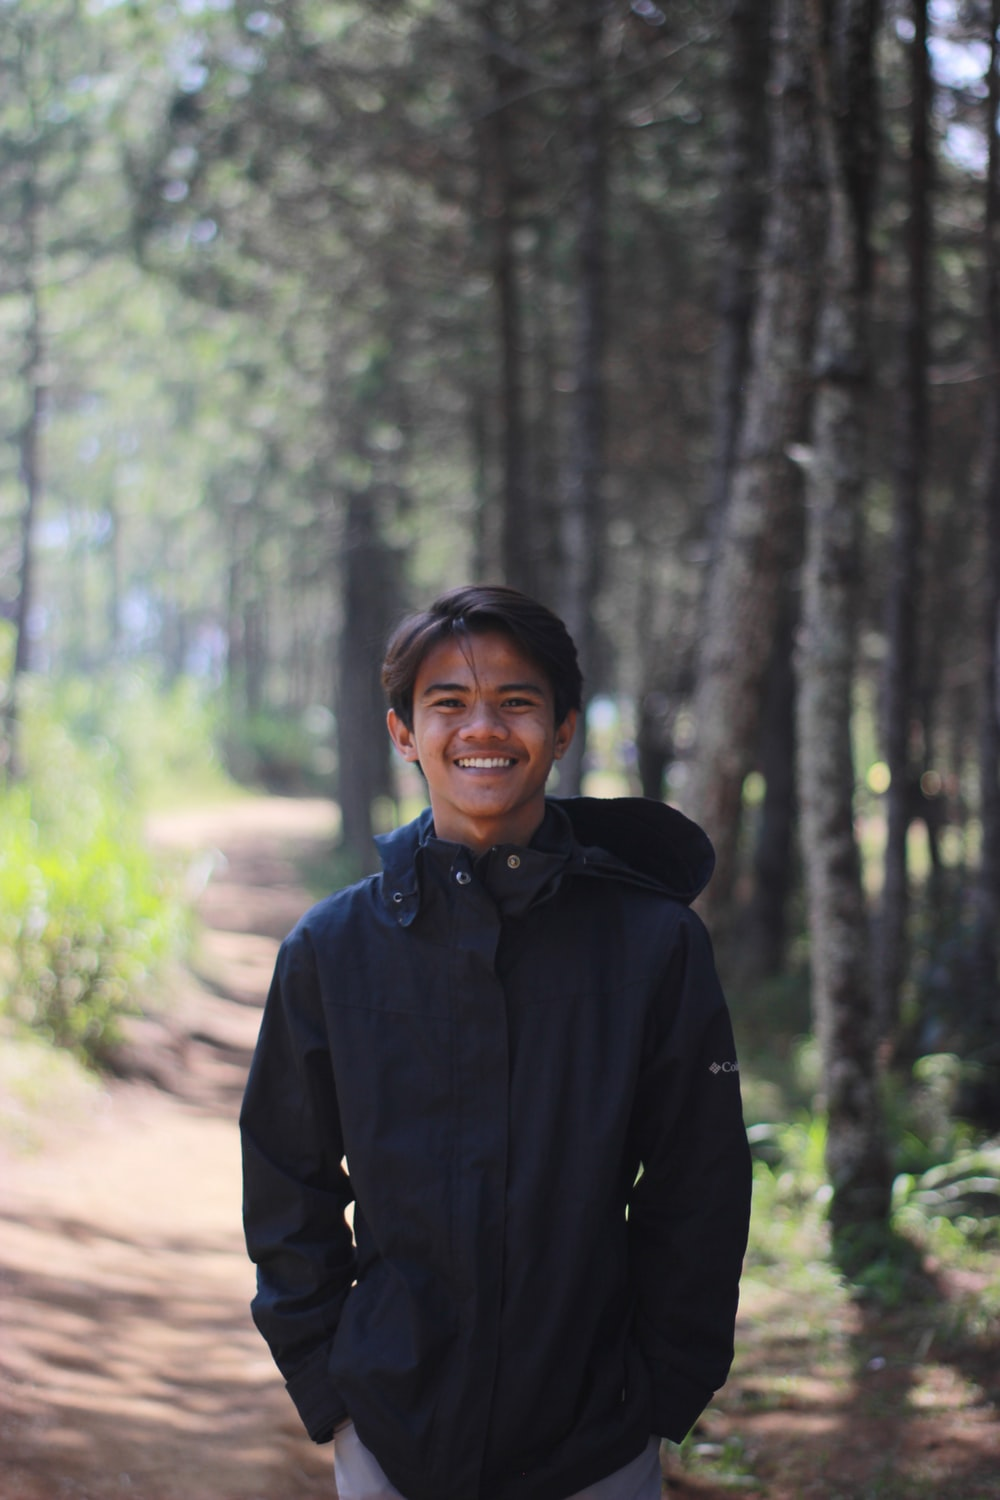 man in black jacket standing in forest during daytime